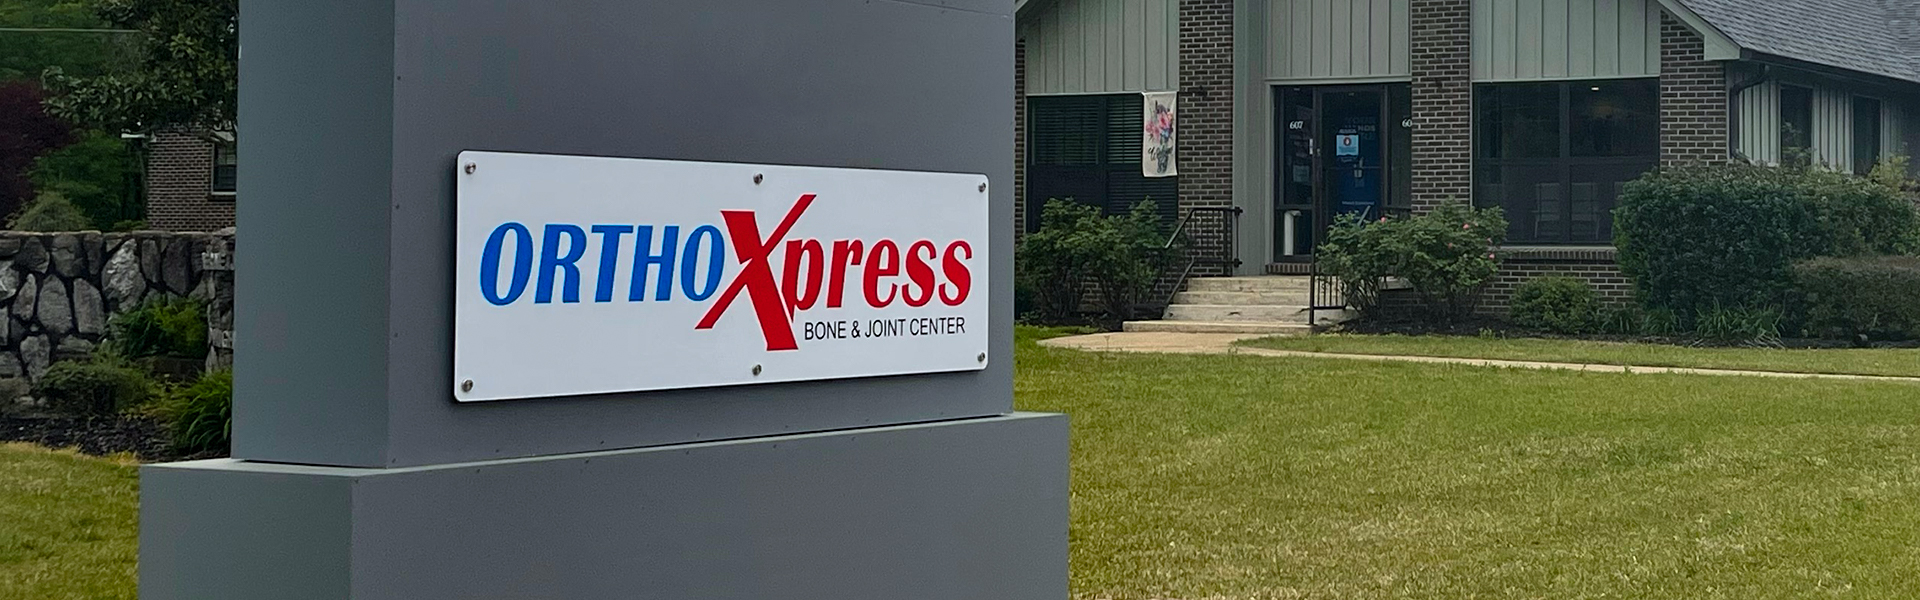 OrthoXpress of Booneville